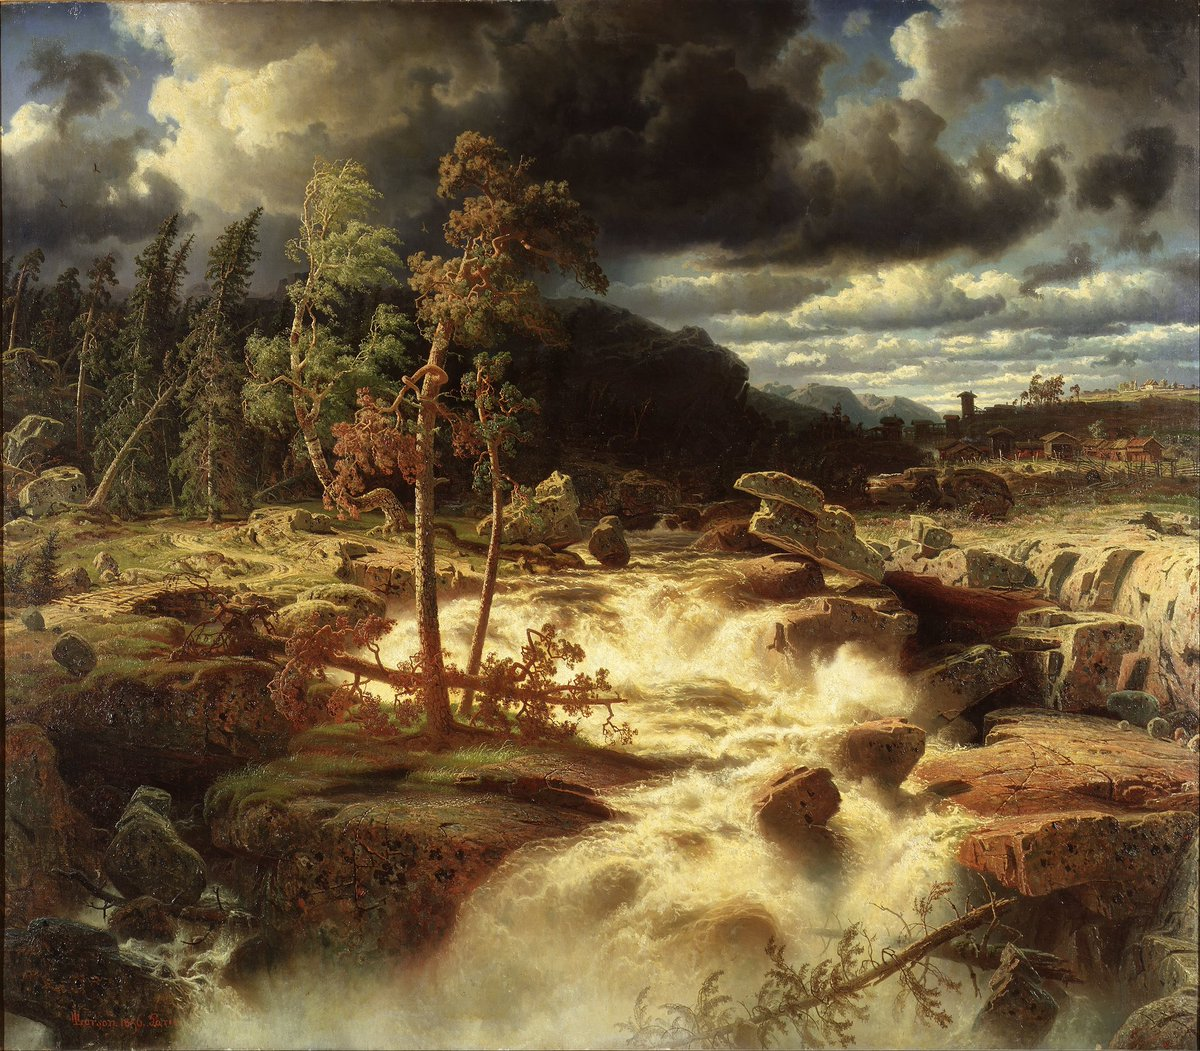 test Twitter Media - #TheNewPainting  Simeon Marcus Larson (5 January 1825, Åtvidaberg, Sweden – 25 January 1864, London, England/United Kingdom) was a Swedish landscape painter.  Småländskt vattenfall / Waterfall in Småland, 1856  Current location: Nationalmuseum SWE (@NatMus_SWE) Stockholm, Sweden https://t.co/ZyOvMwPf2H